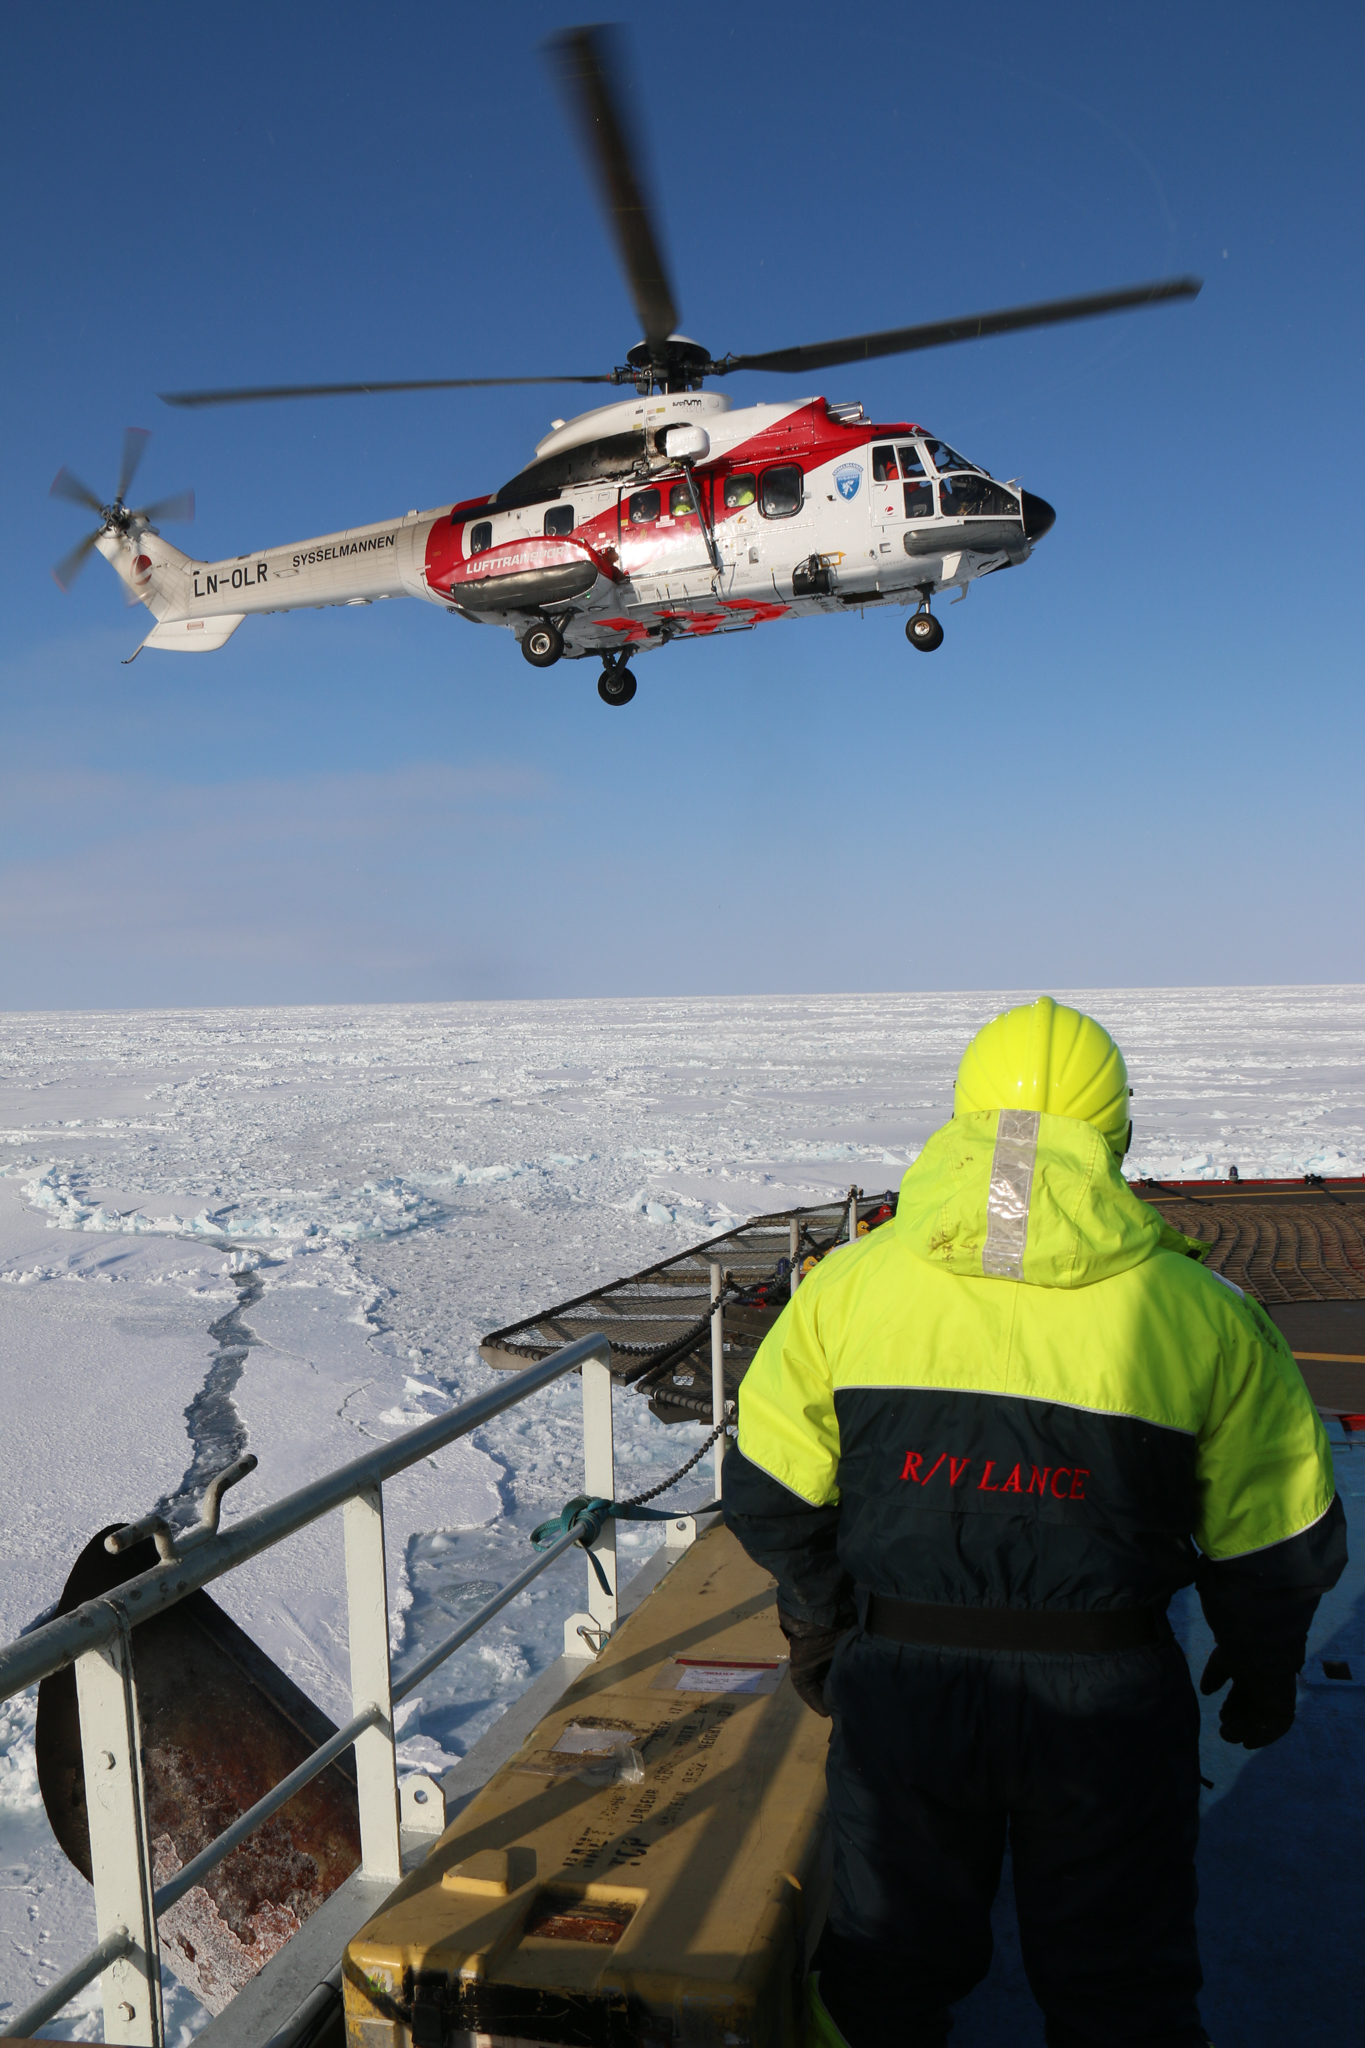 A helicopter transports expedition scientists from the ship to more remote field sites. Photograph by Mats Granskog, Norwegian Polar Institute